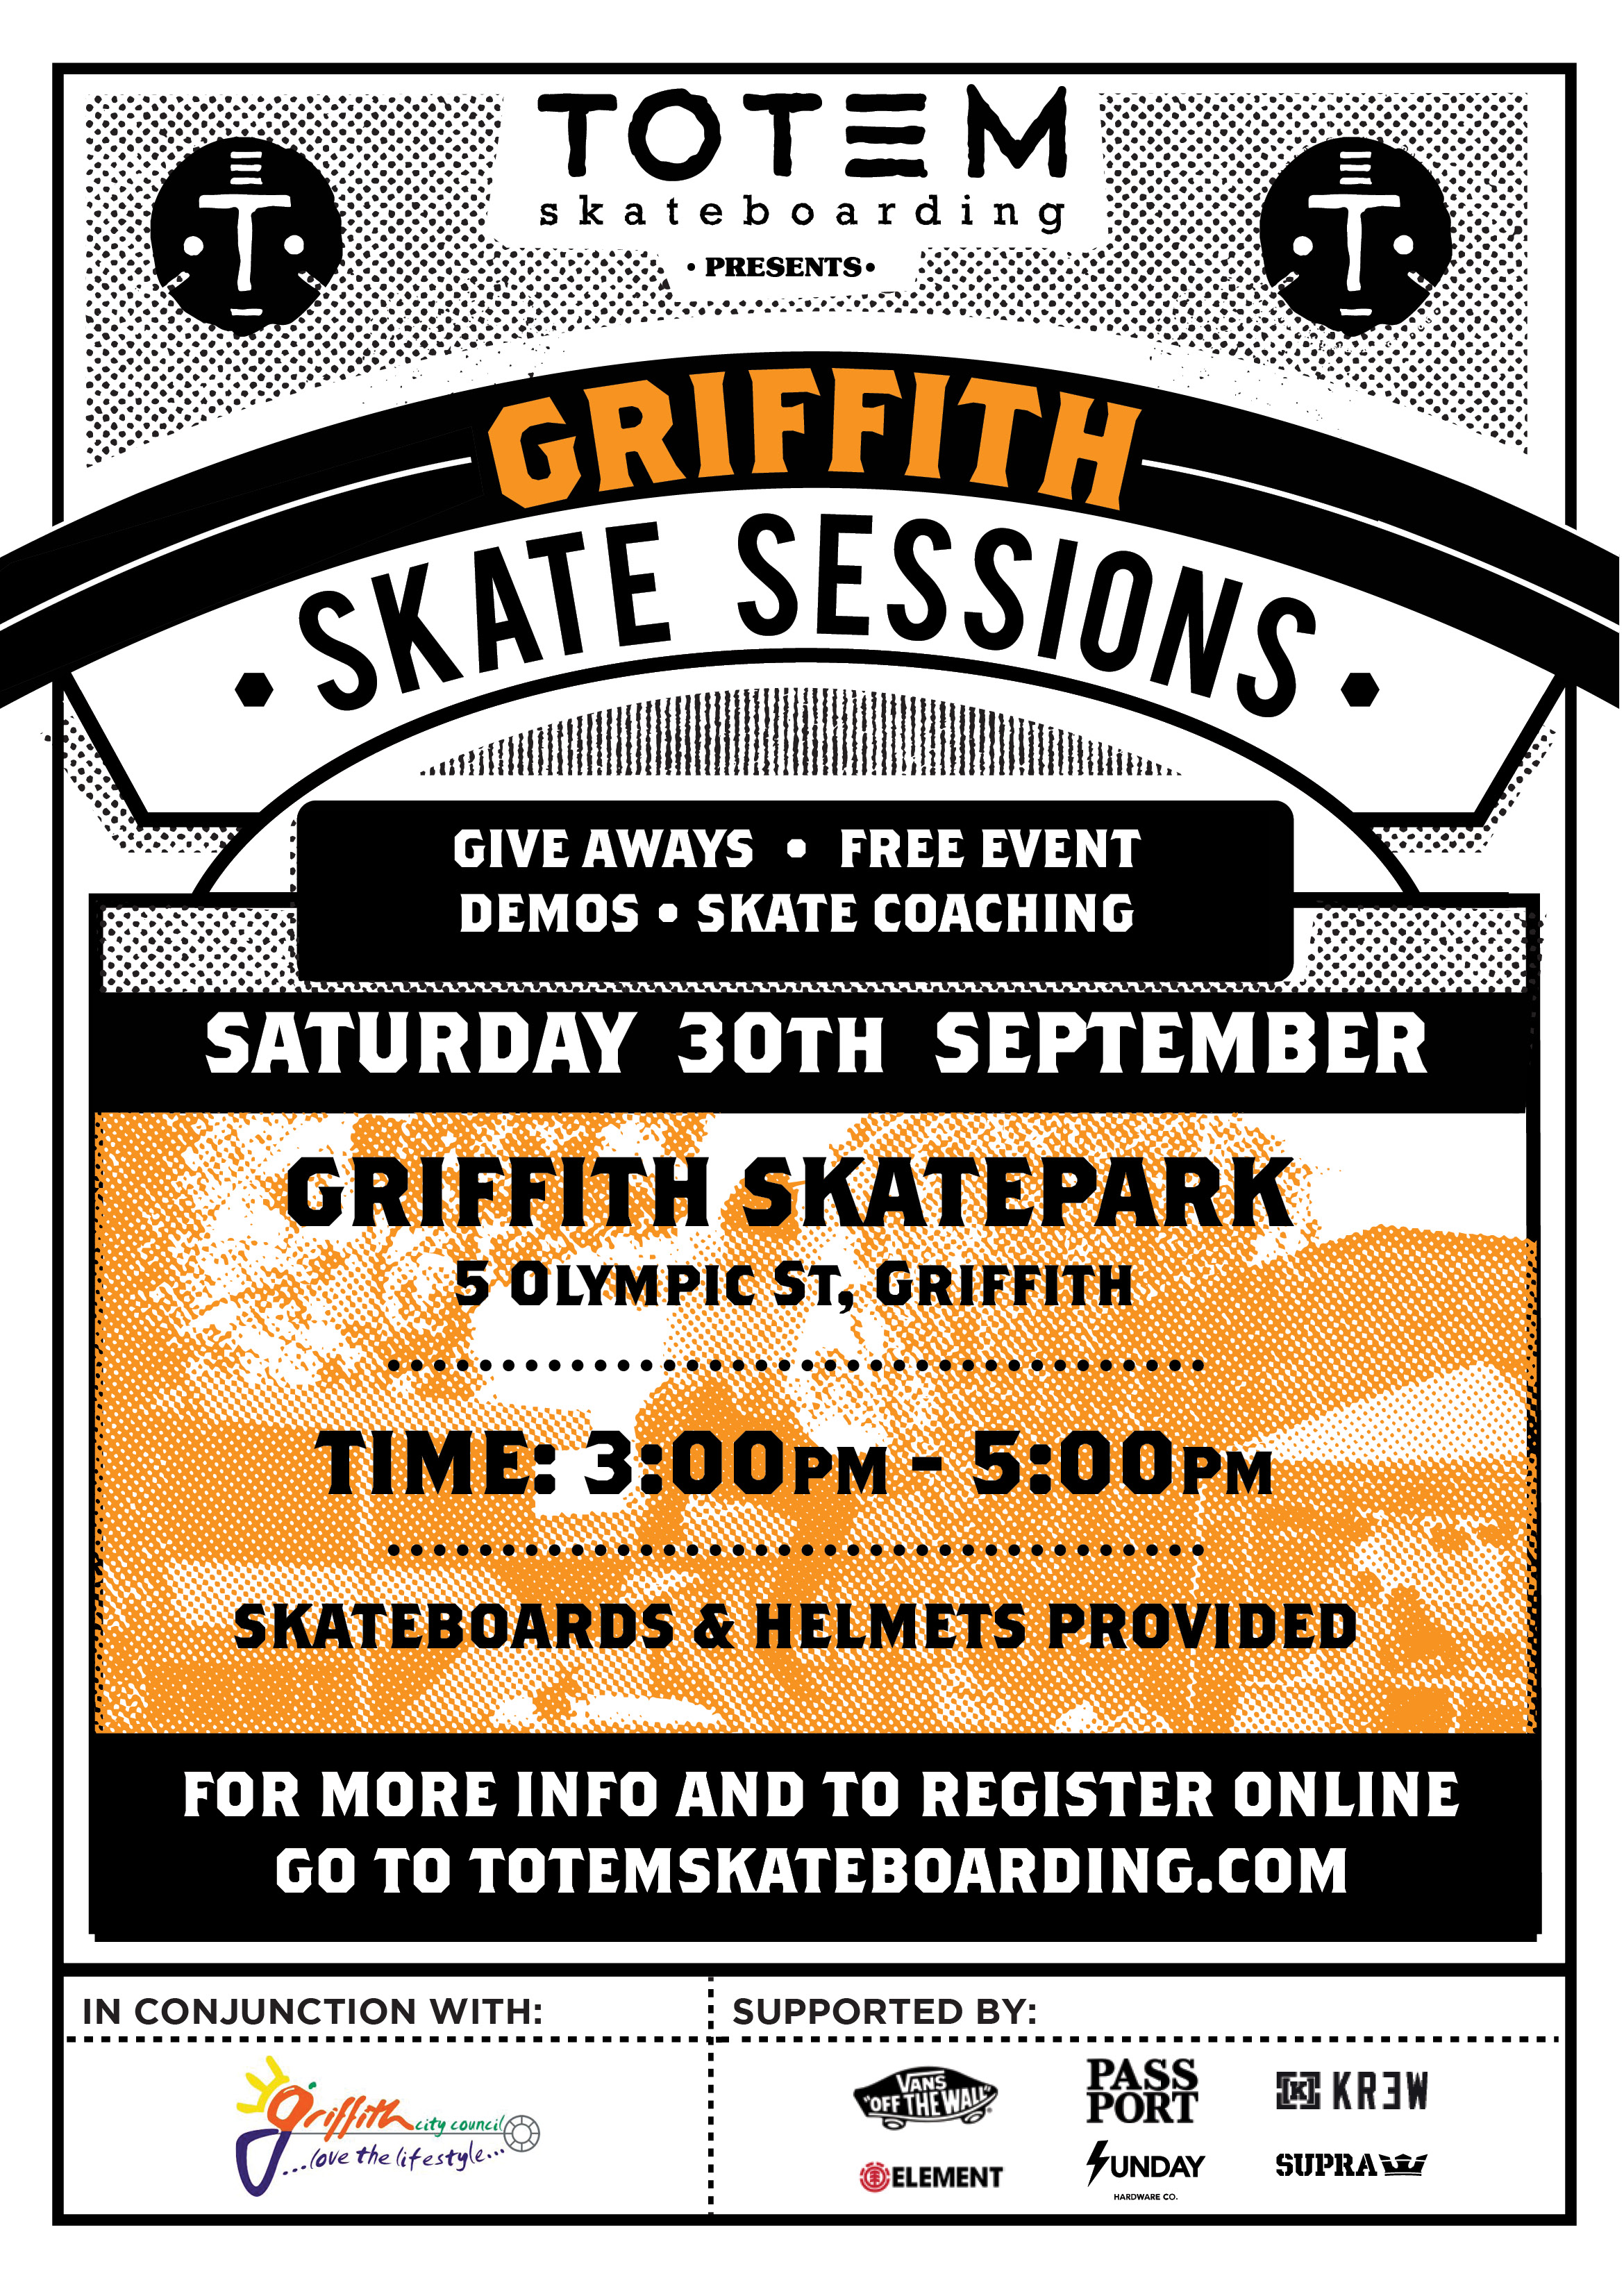 TOTEM.SEP.OCT TOUR.GRIFFITH SESSIONS SEP 30TH.2017 (2).jpg